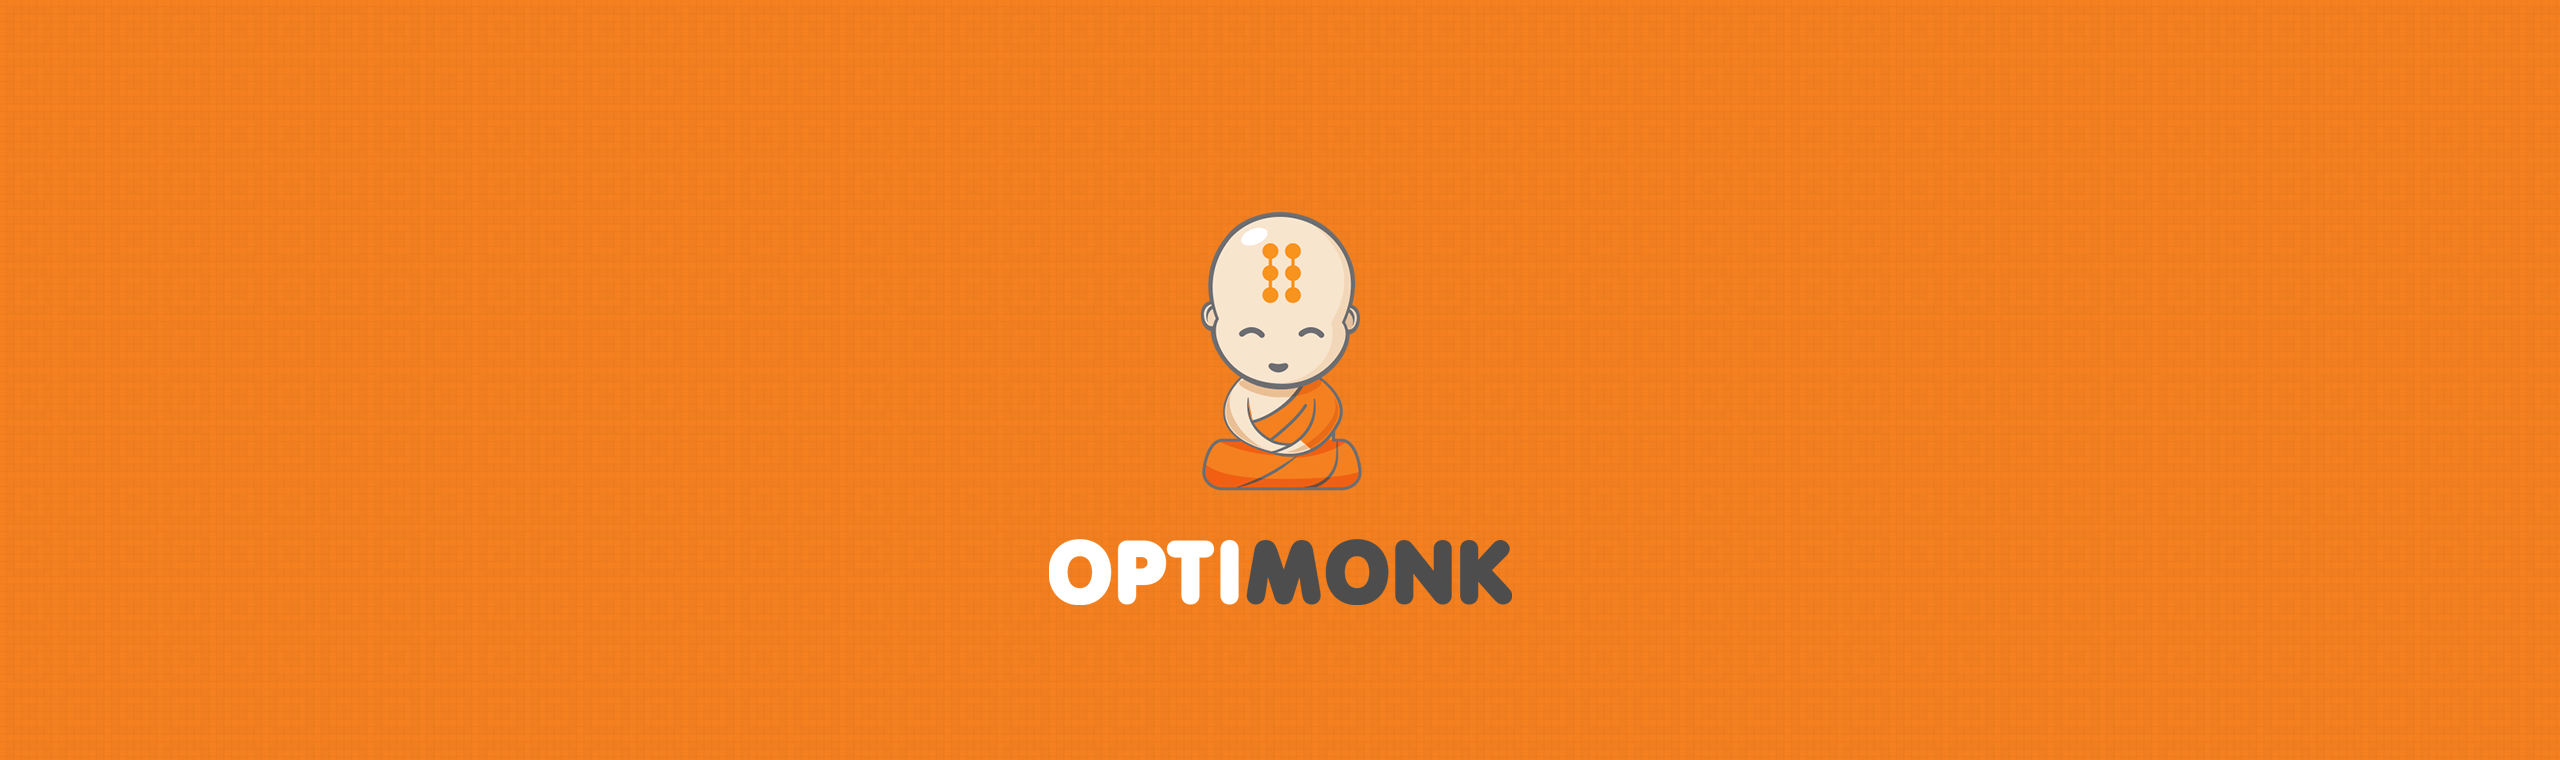 Use Optimonk for on site retargeting to generate leads